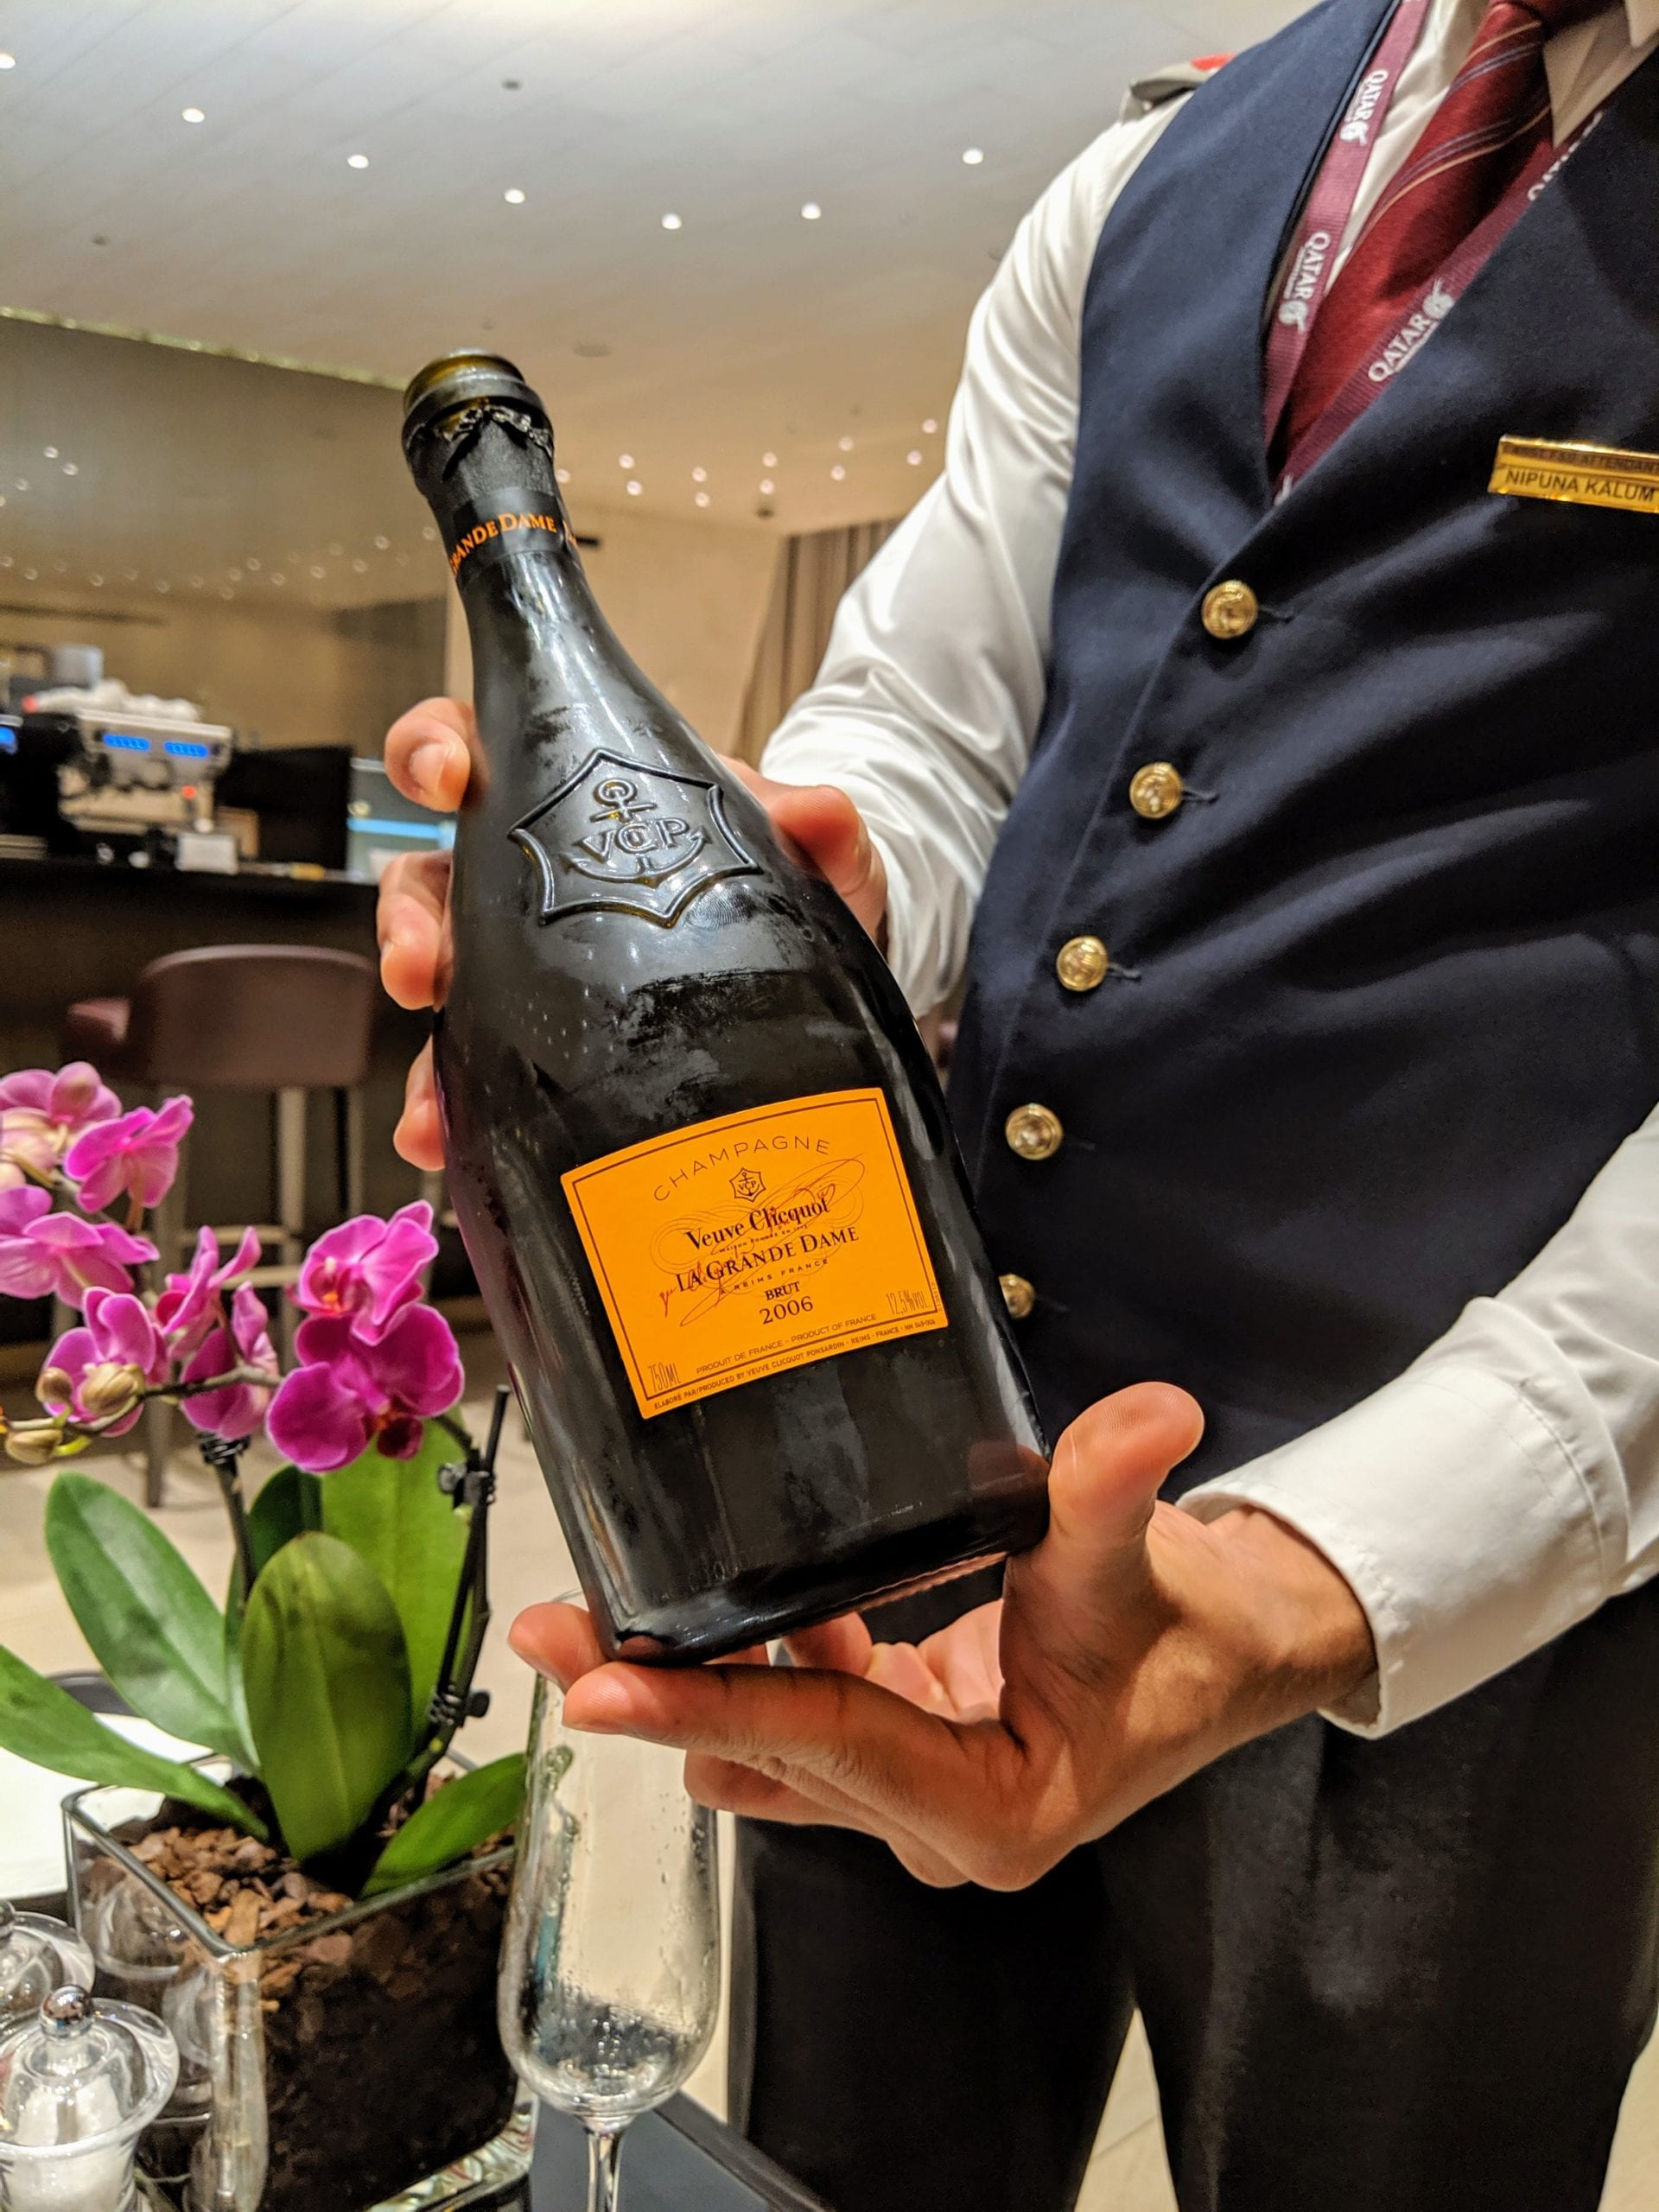 qatar airways veuve clicquot